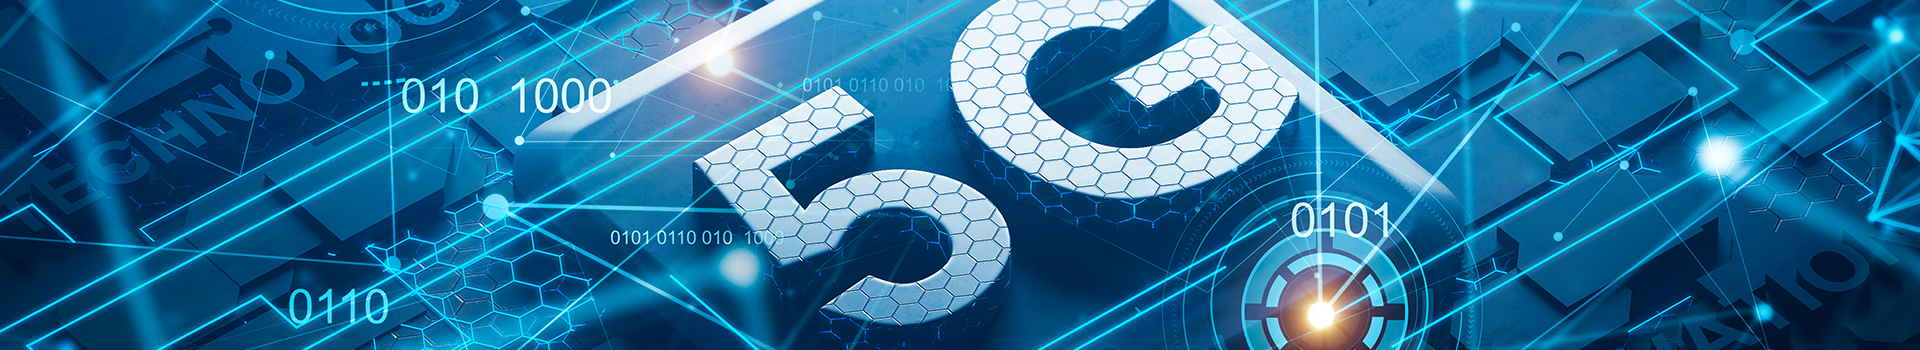 5G for Experts in Non-Telco Industries